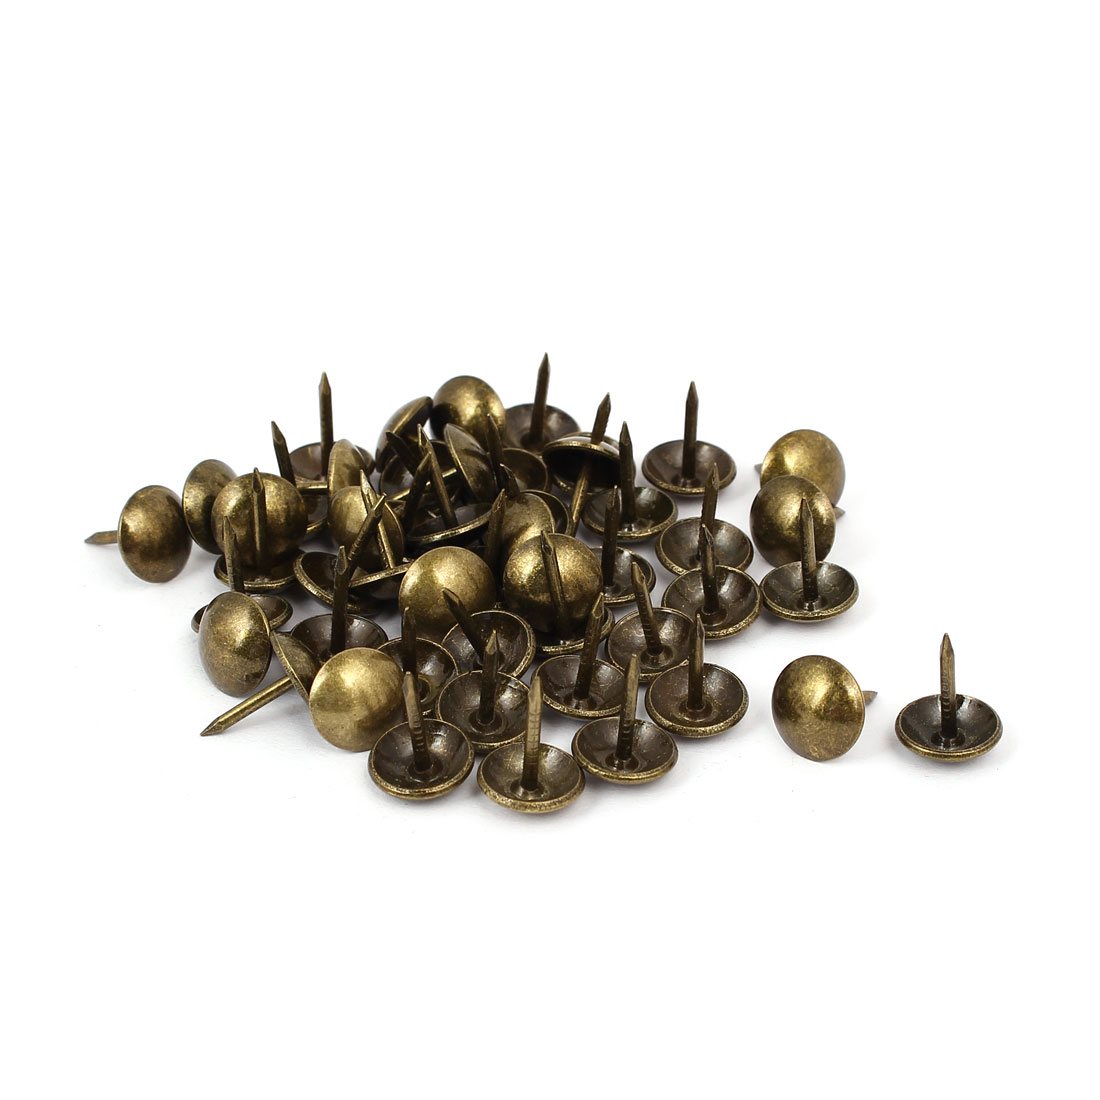 Leather Sofa Round Head Upholstery Tack Nail Bronze Tone 10mm x 13mm 50pcs